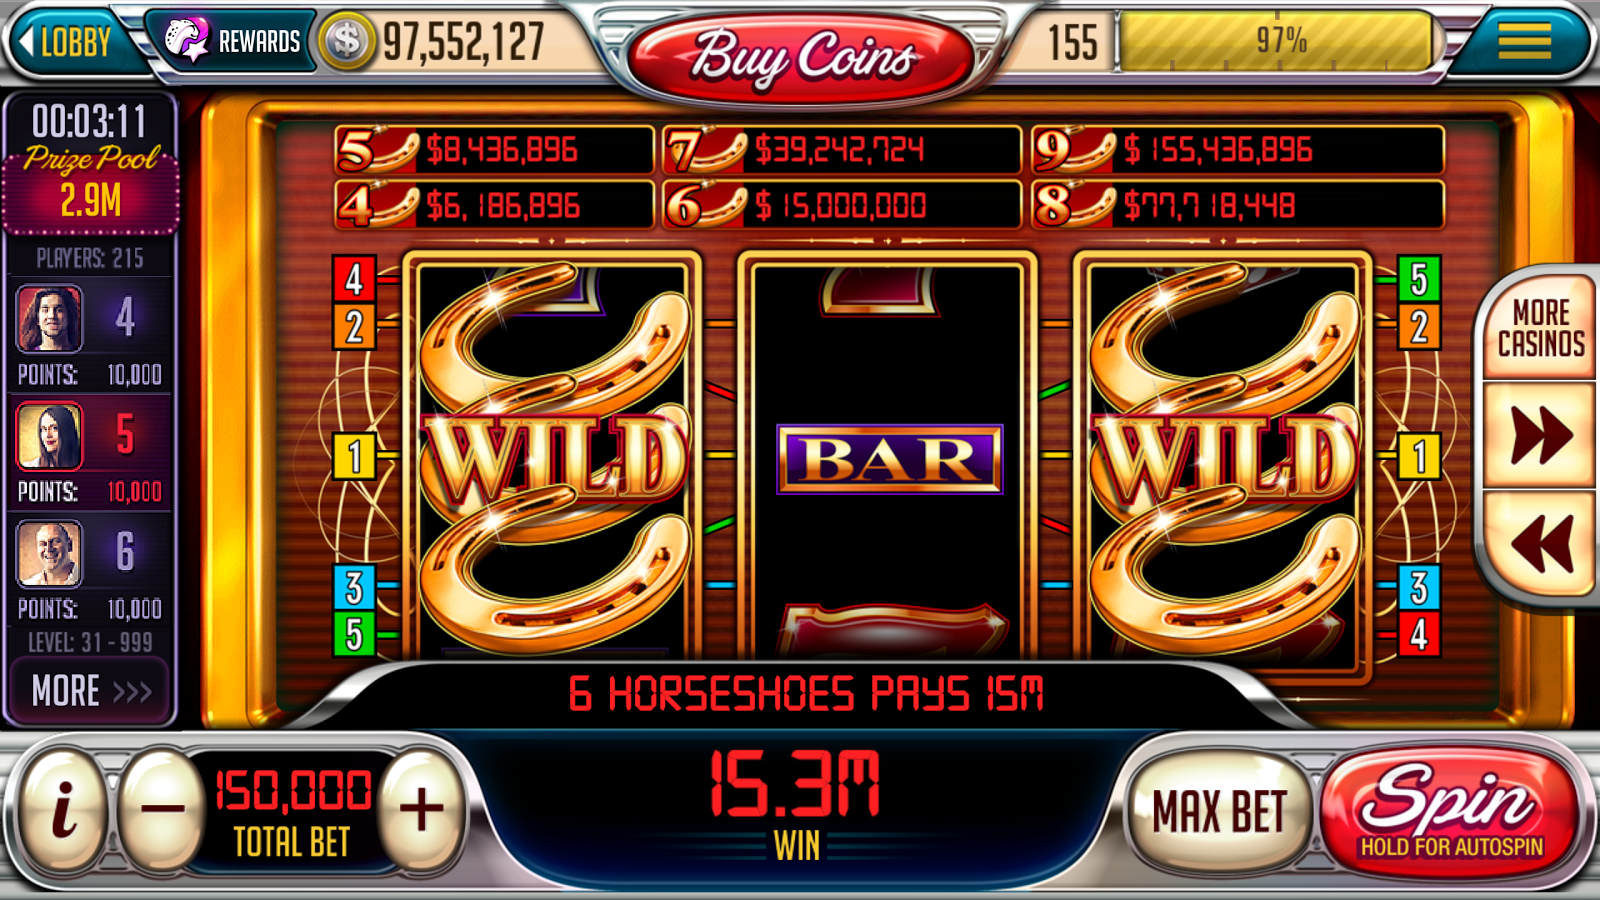 vegas downtown slots free coins